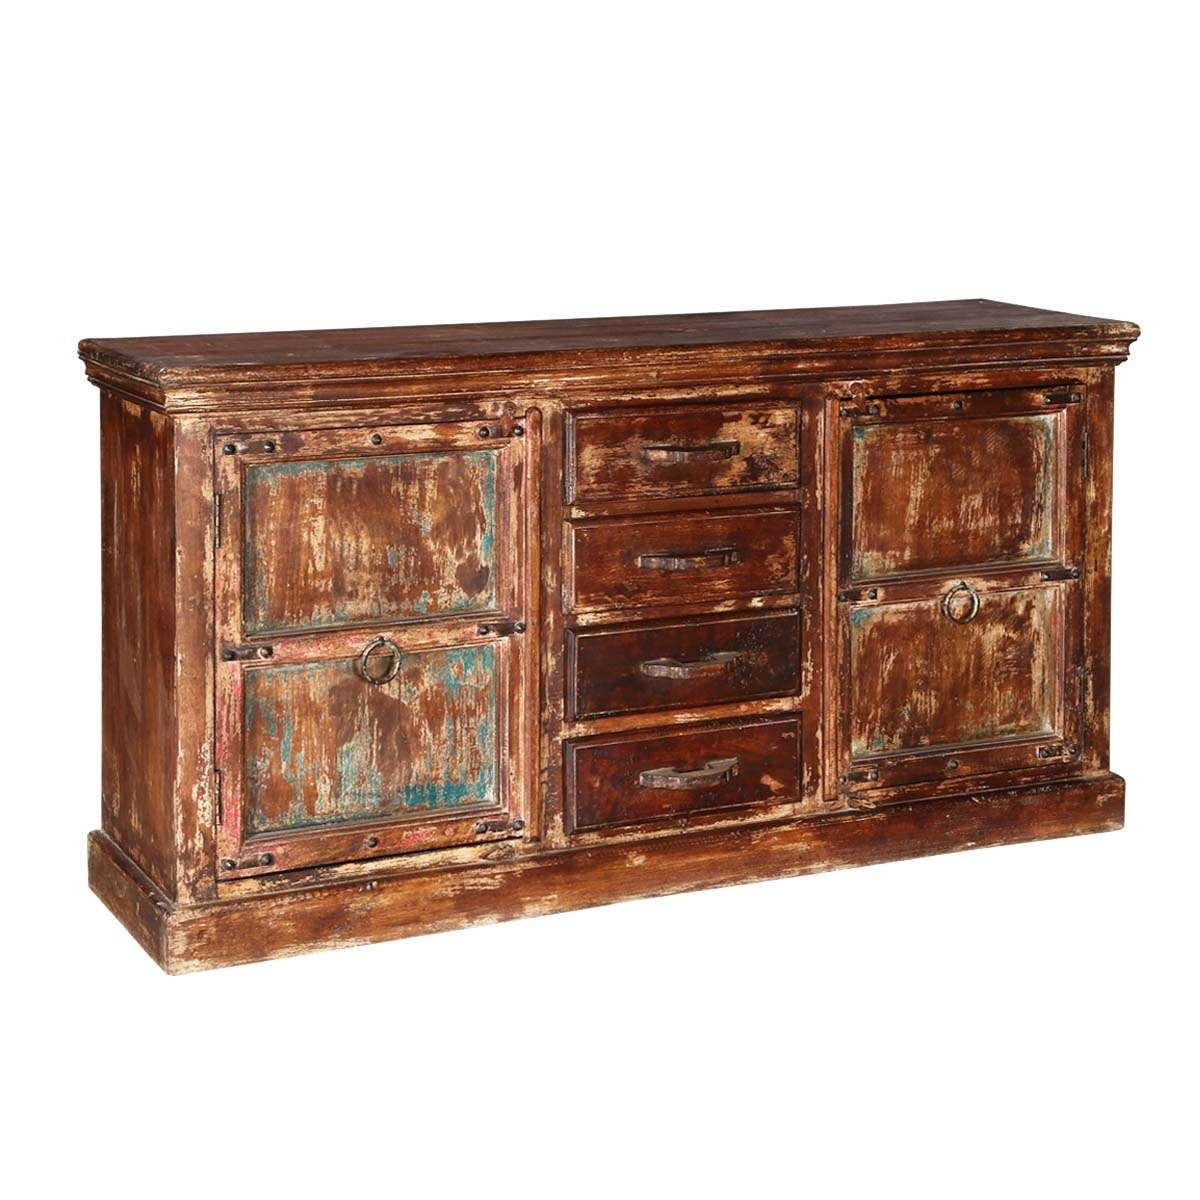 Rustic Reclaimed Wood 2 Door 4 Drawer Accent Sideboard Cabinet Intended For Reclaimed Sideboards (View 7 of 20)